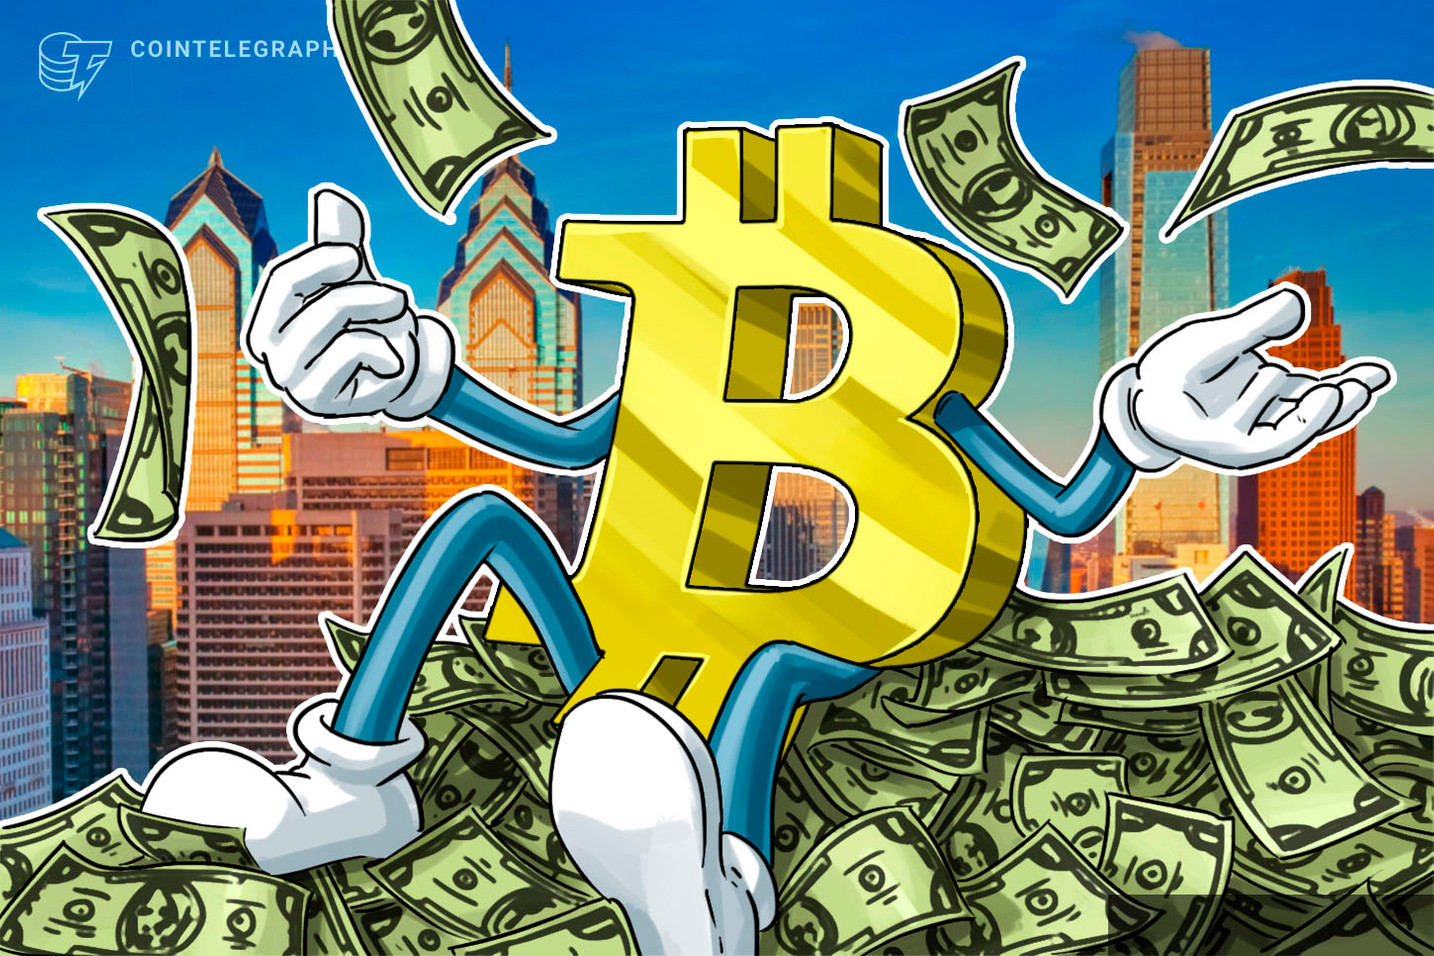 Major Bitcoin Accumulation Was Underway by Big Money During Crypto Winter, Analysts Say